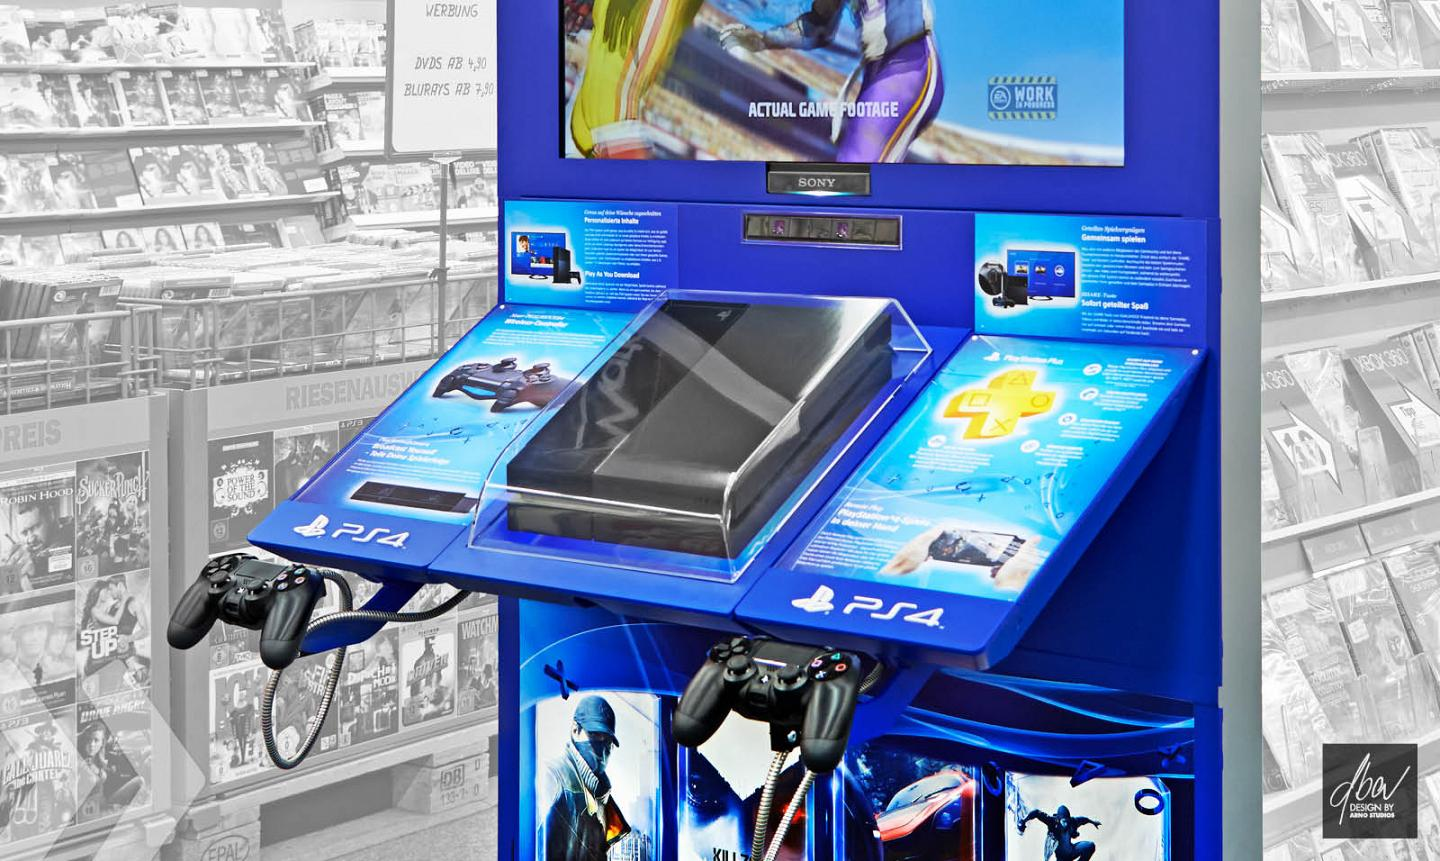 Sony PlayStation 4 Display 2